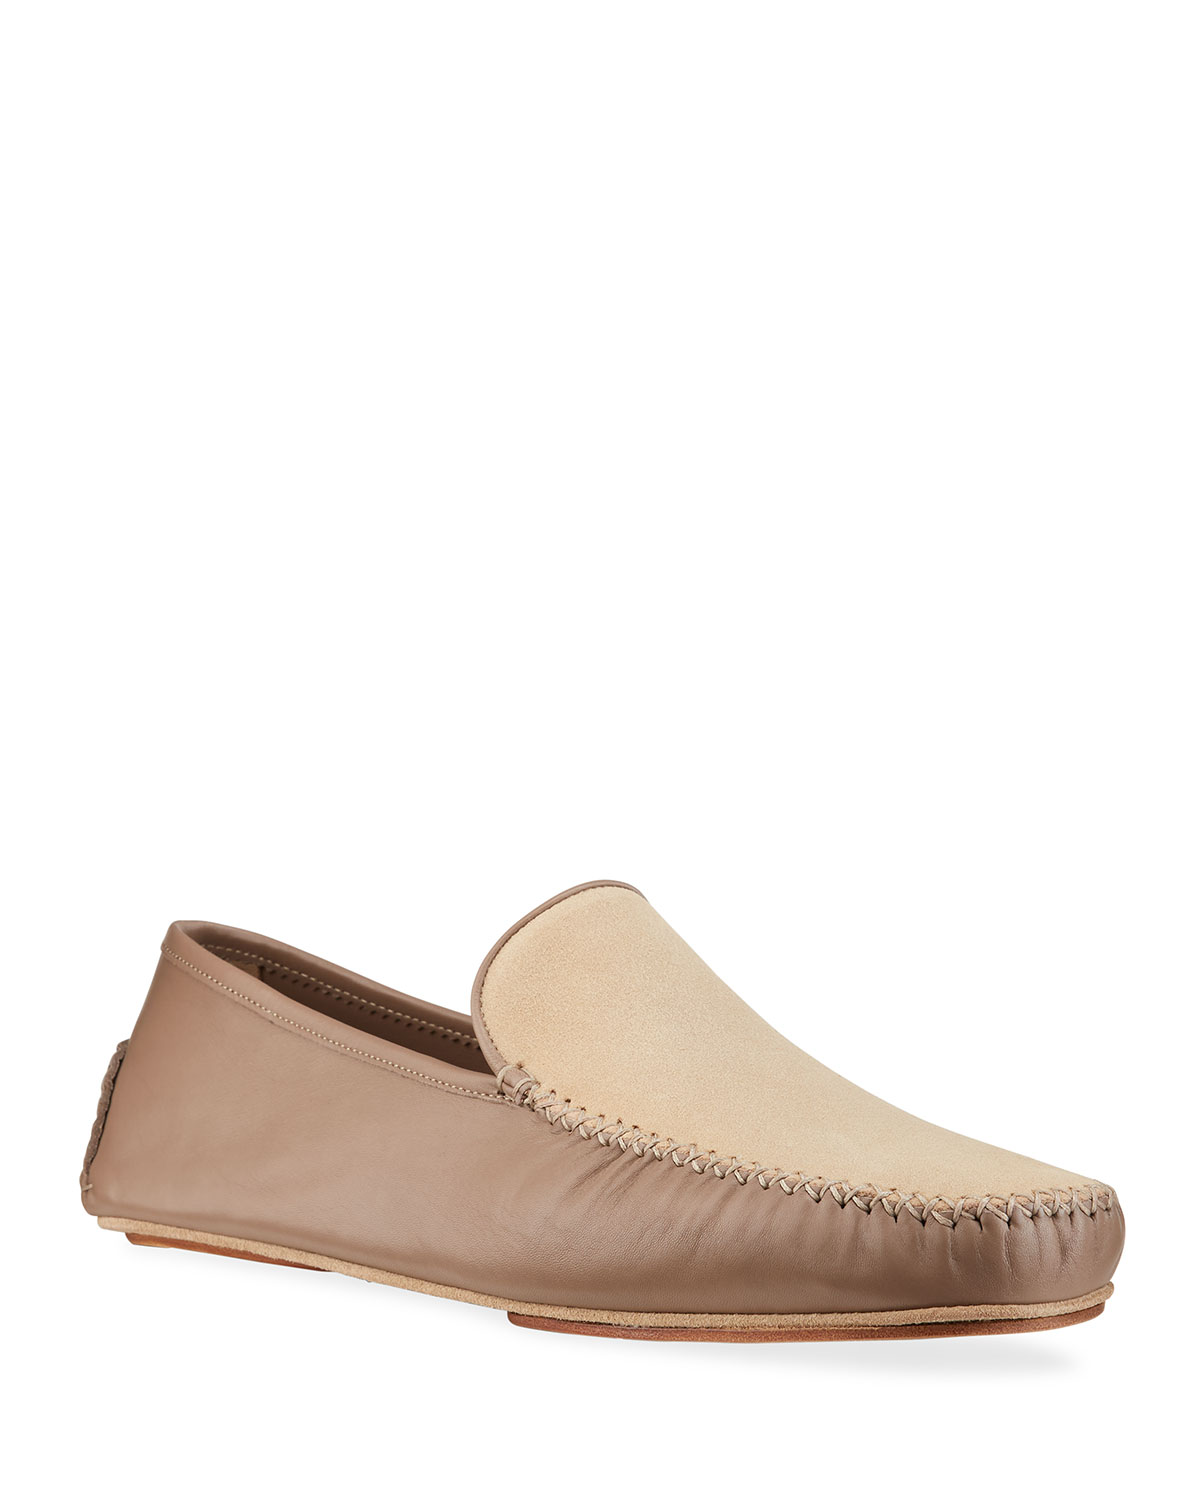 Manolo Blahnik MEN'S MAYFAIR SUEDE AND LEATHER SLIPPERS